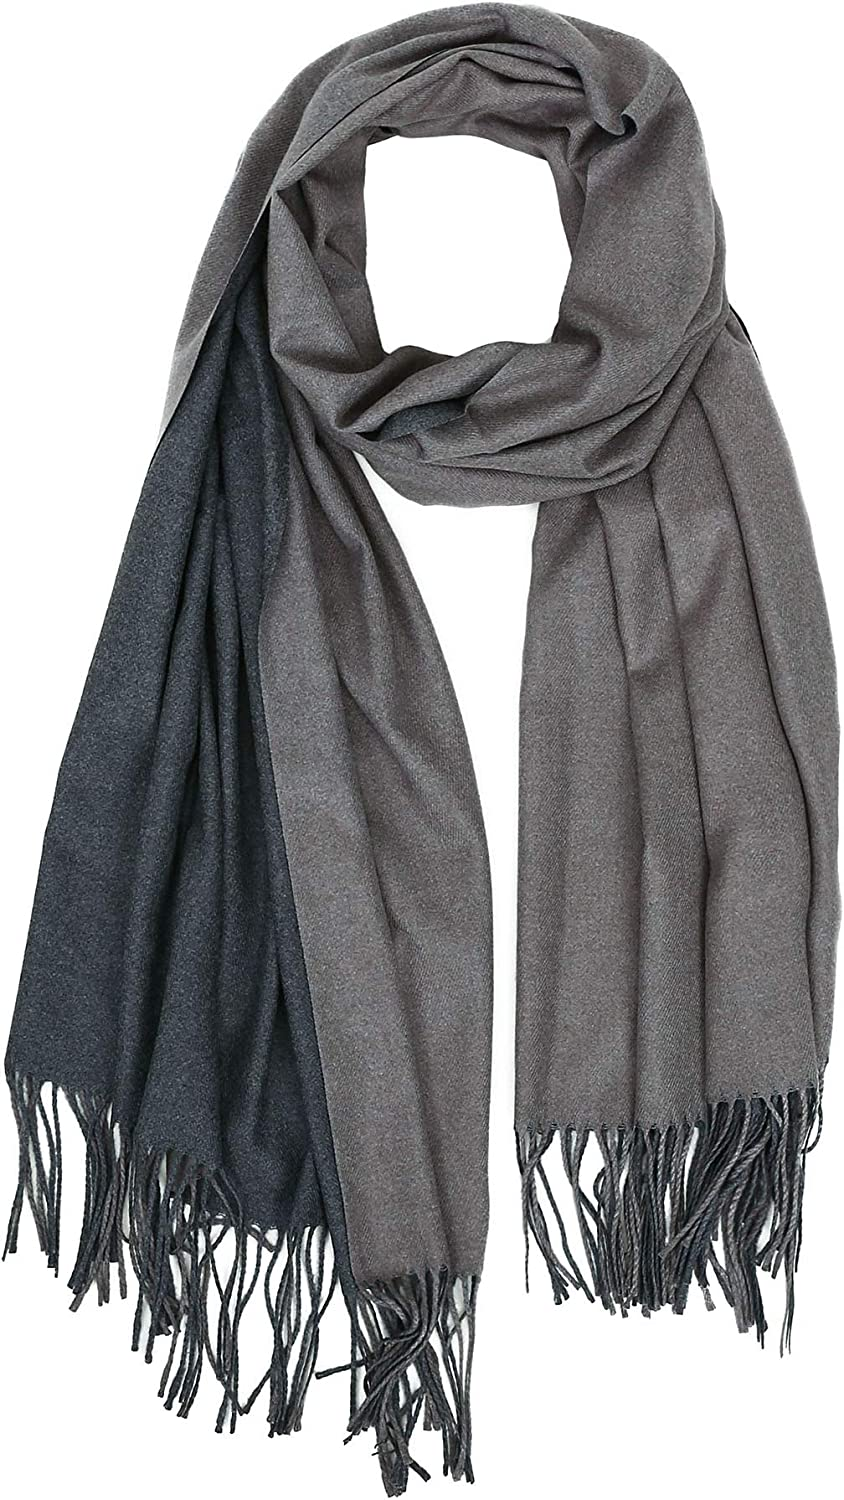 Jaweaver Two Tone Cashmere Scarf For Women Men, Large Warm Pashmina Shawl Wrap Fall Winter Stole Scarves w Gift Box